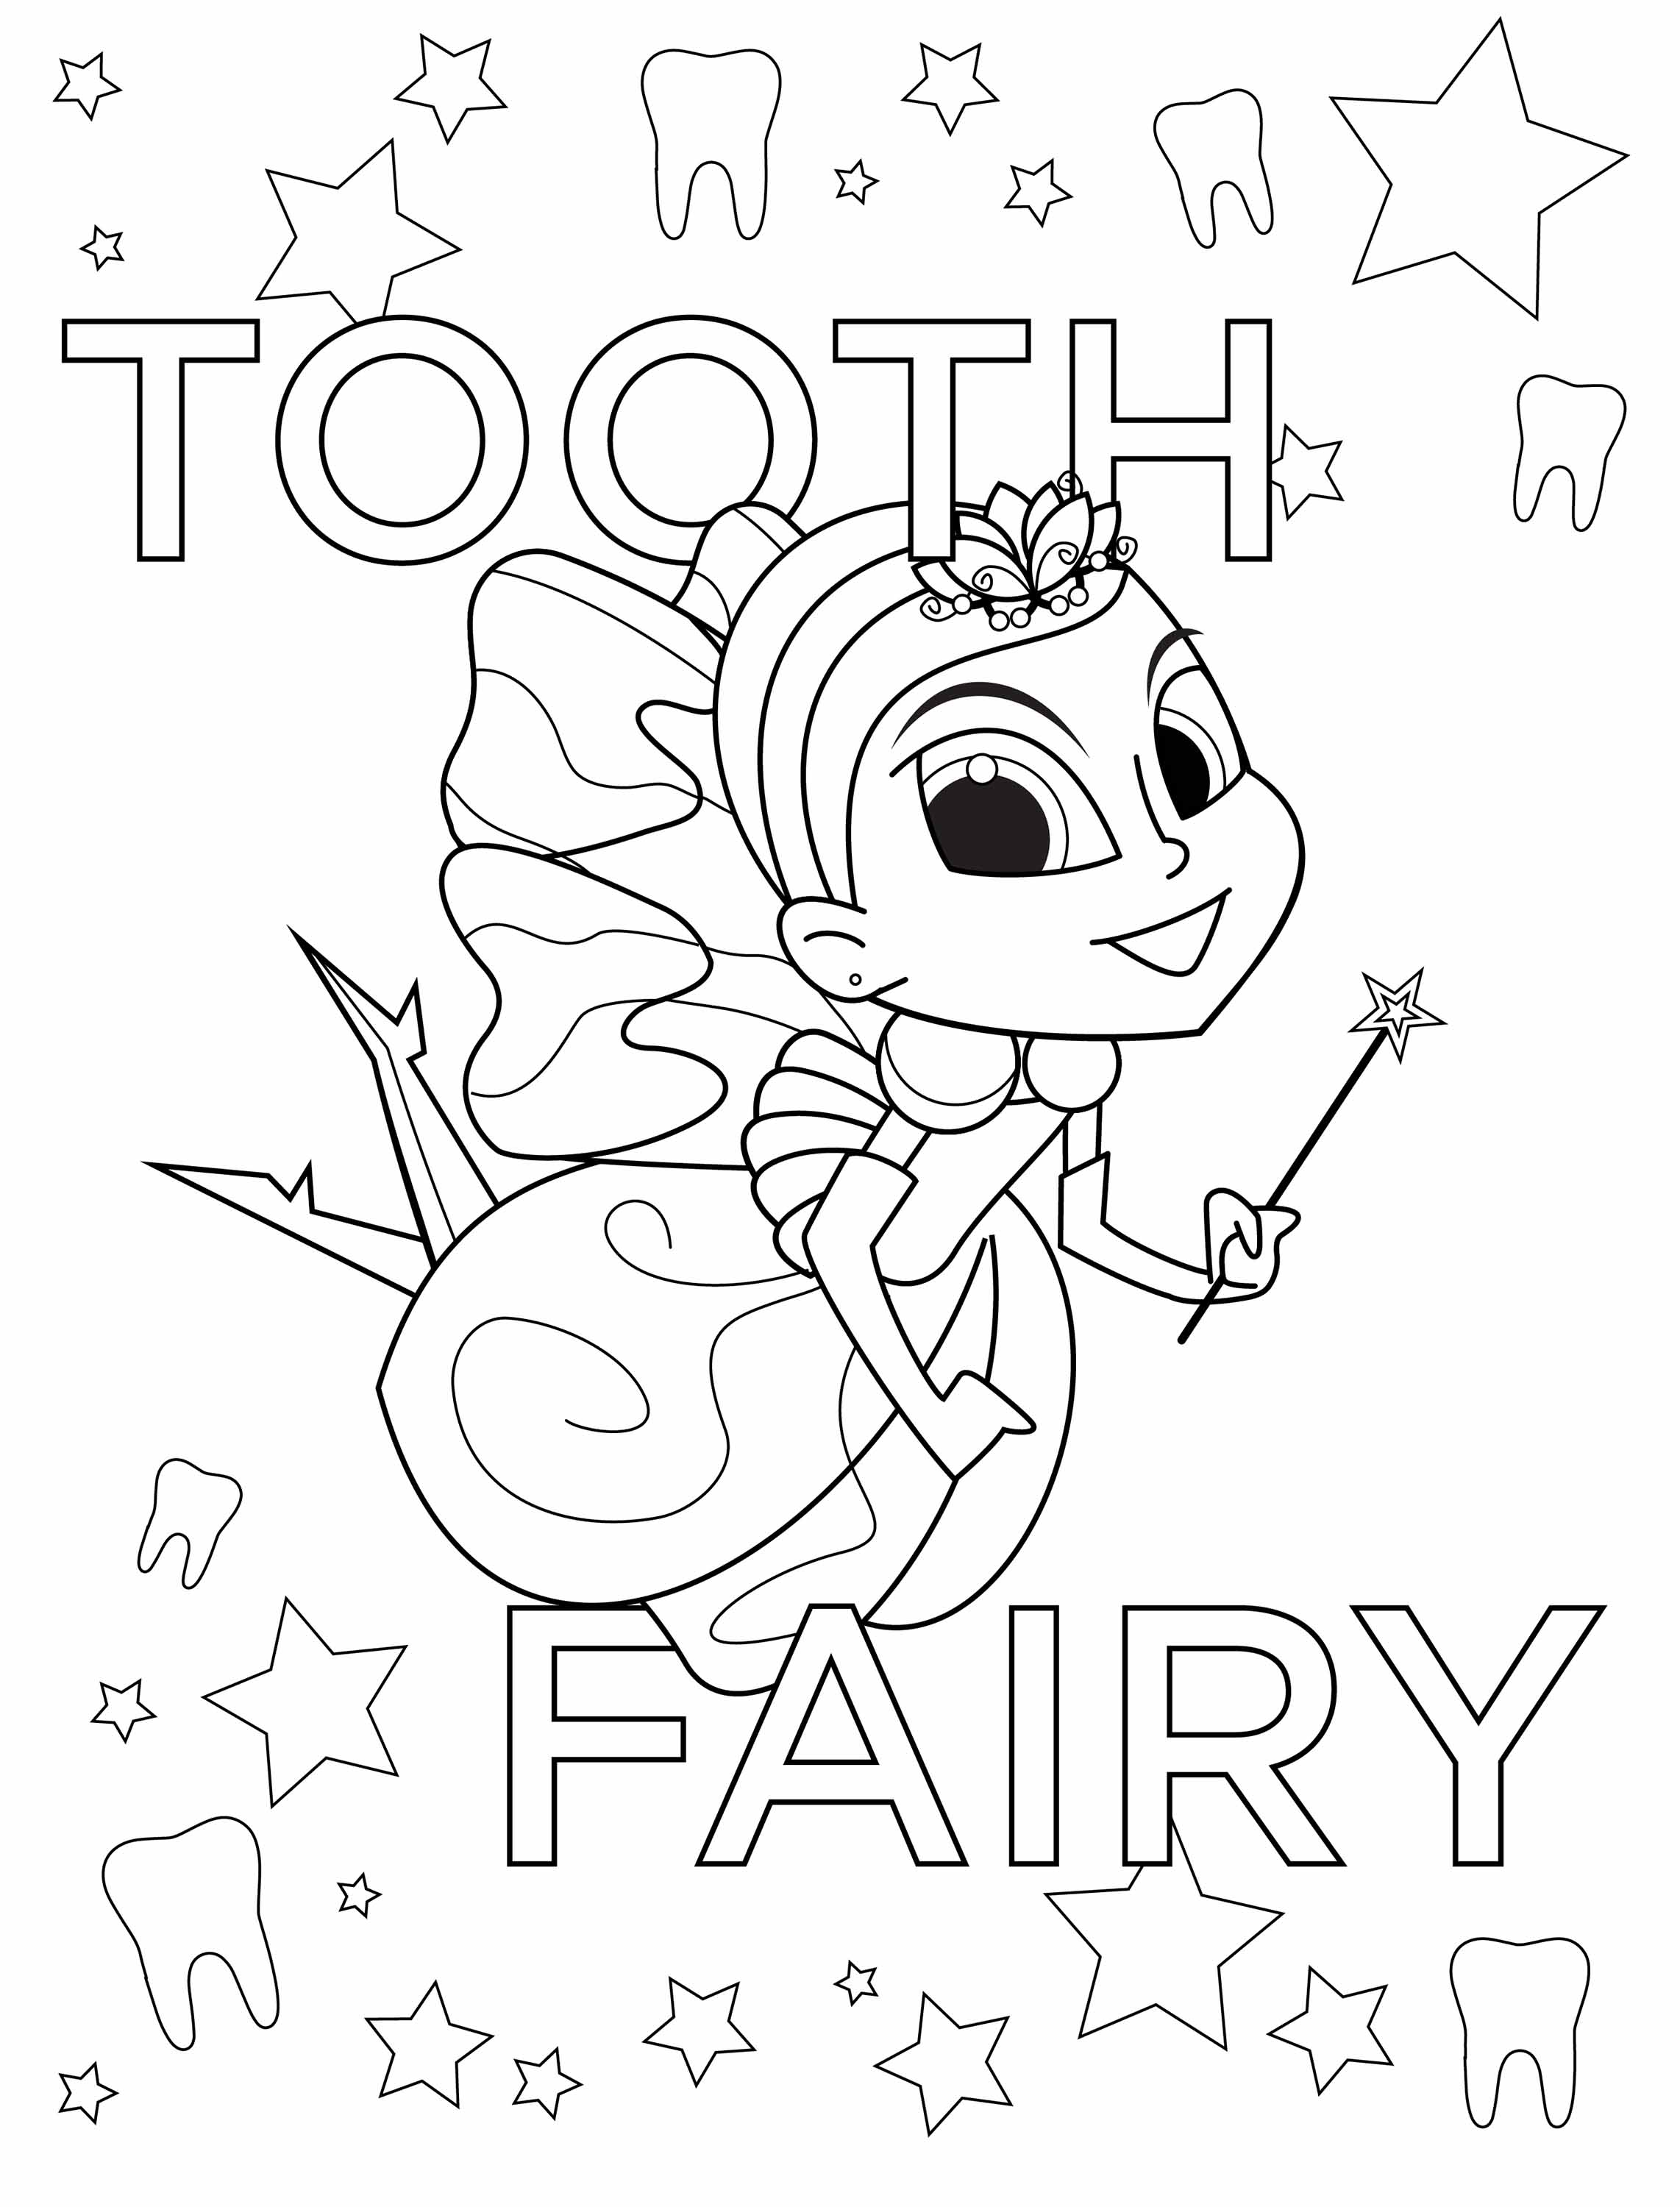 Outstanding Hermey Coloring Sheet 5 Kids Activity Sheets Collection Of Latest Dental Health Coloring Sheets Healthy Pages My Plate Dairy to Print